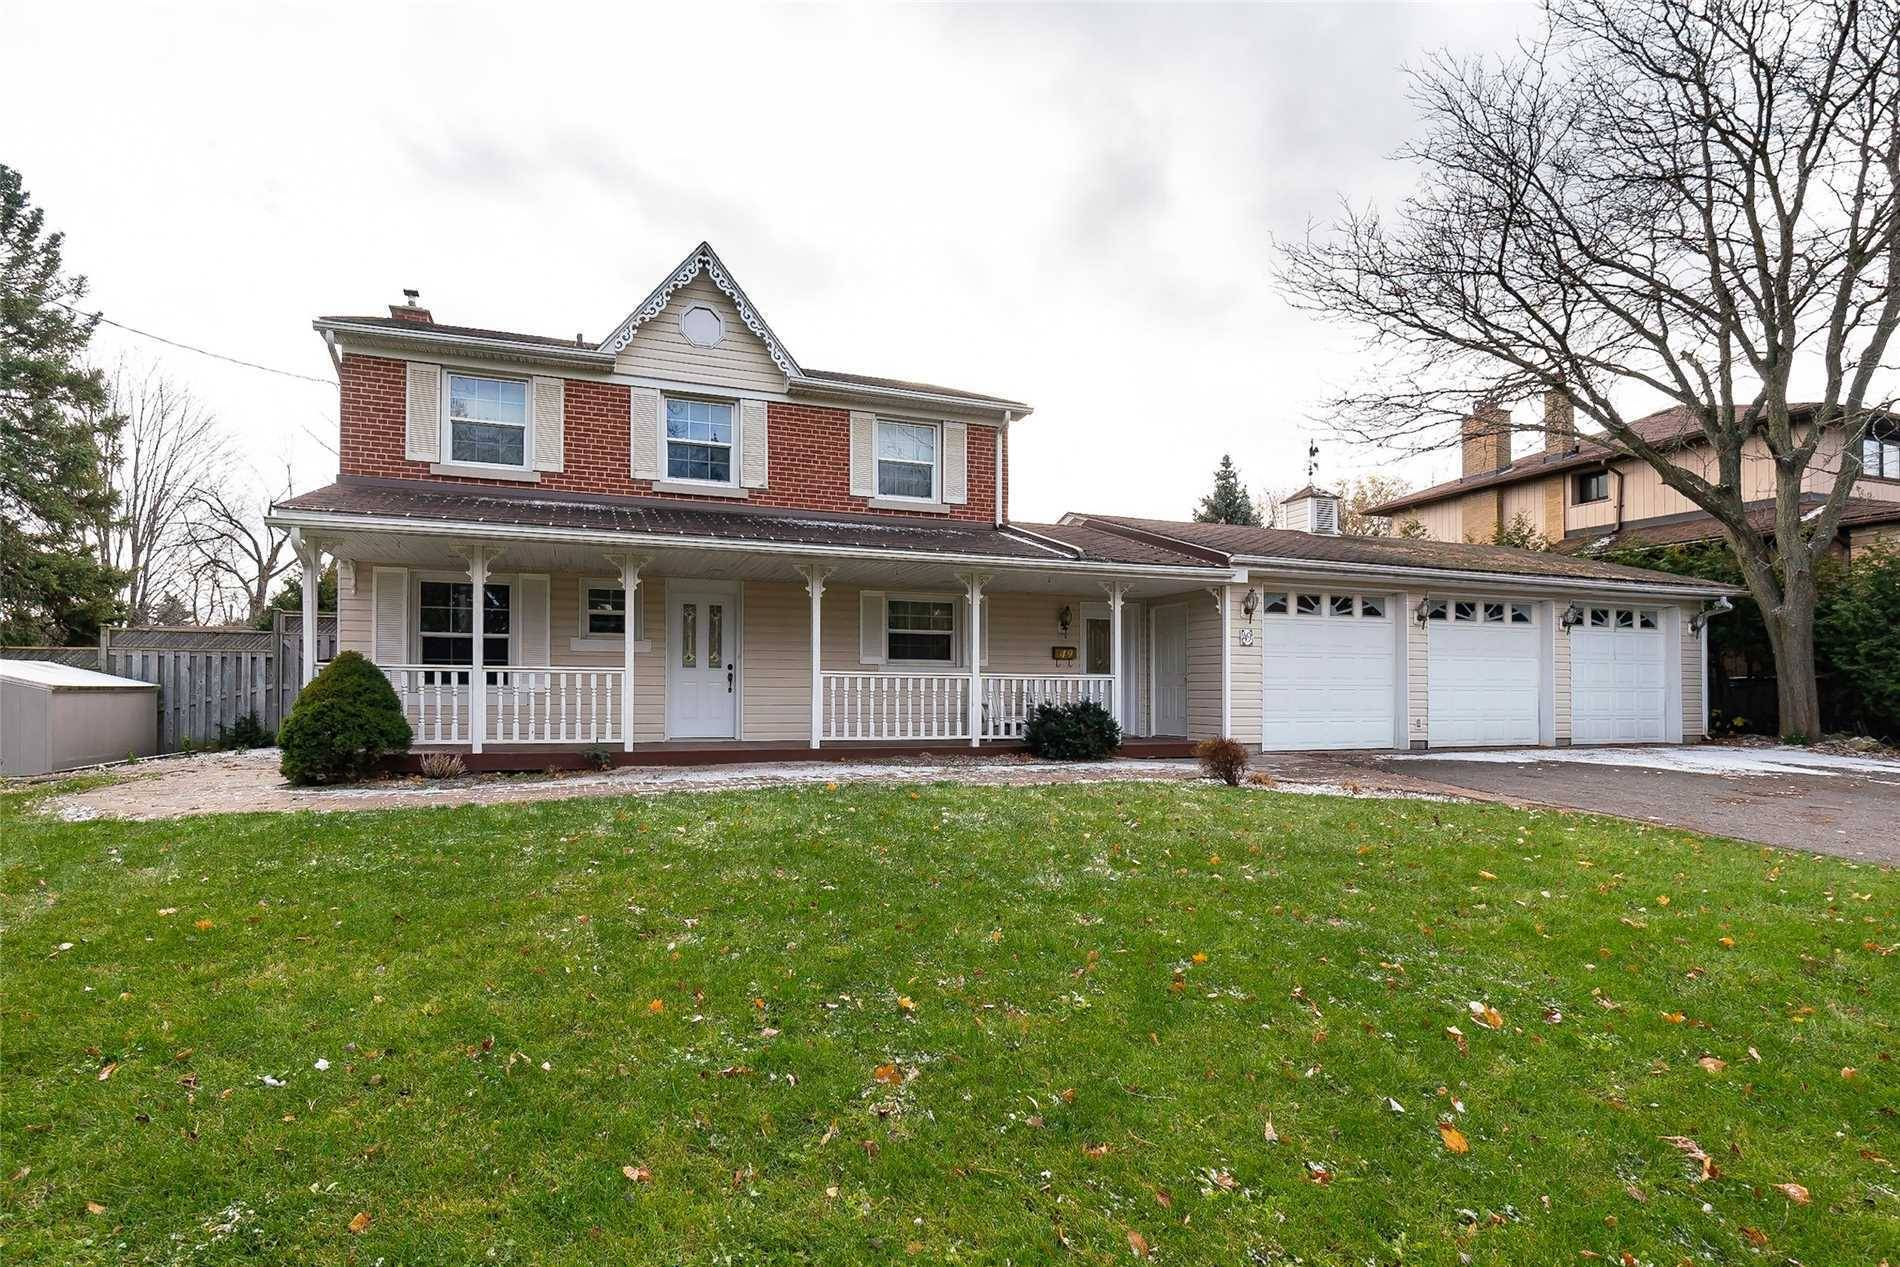 House for sale at 49 Thornheights Rd Markham Ontario - MLS: N4419875